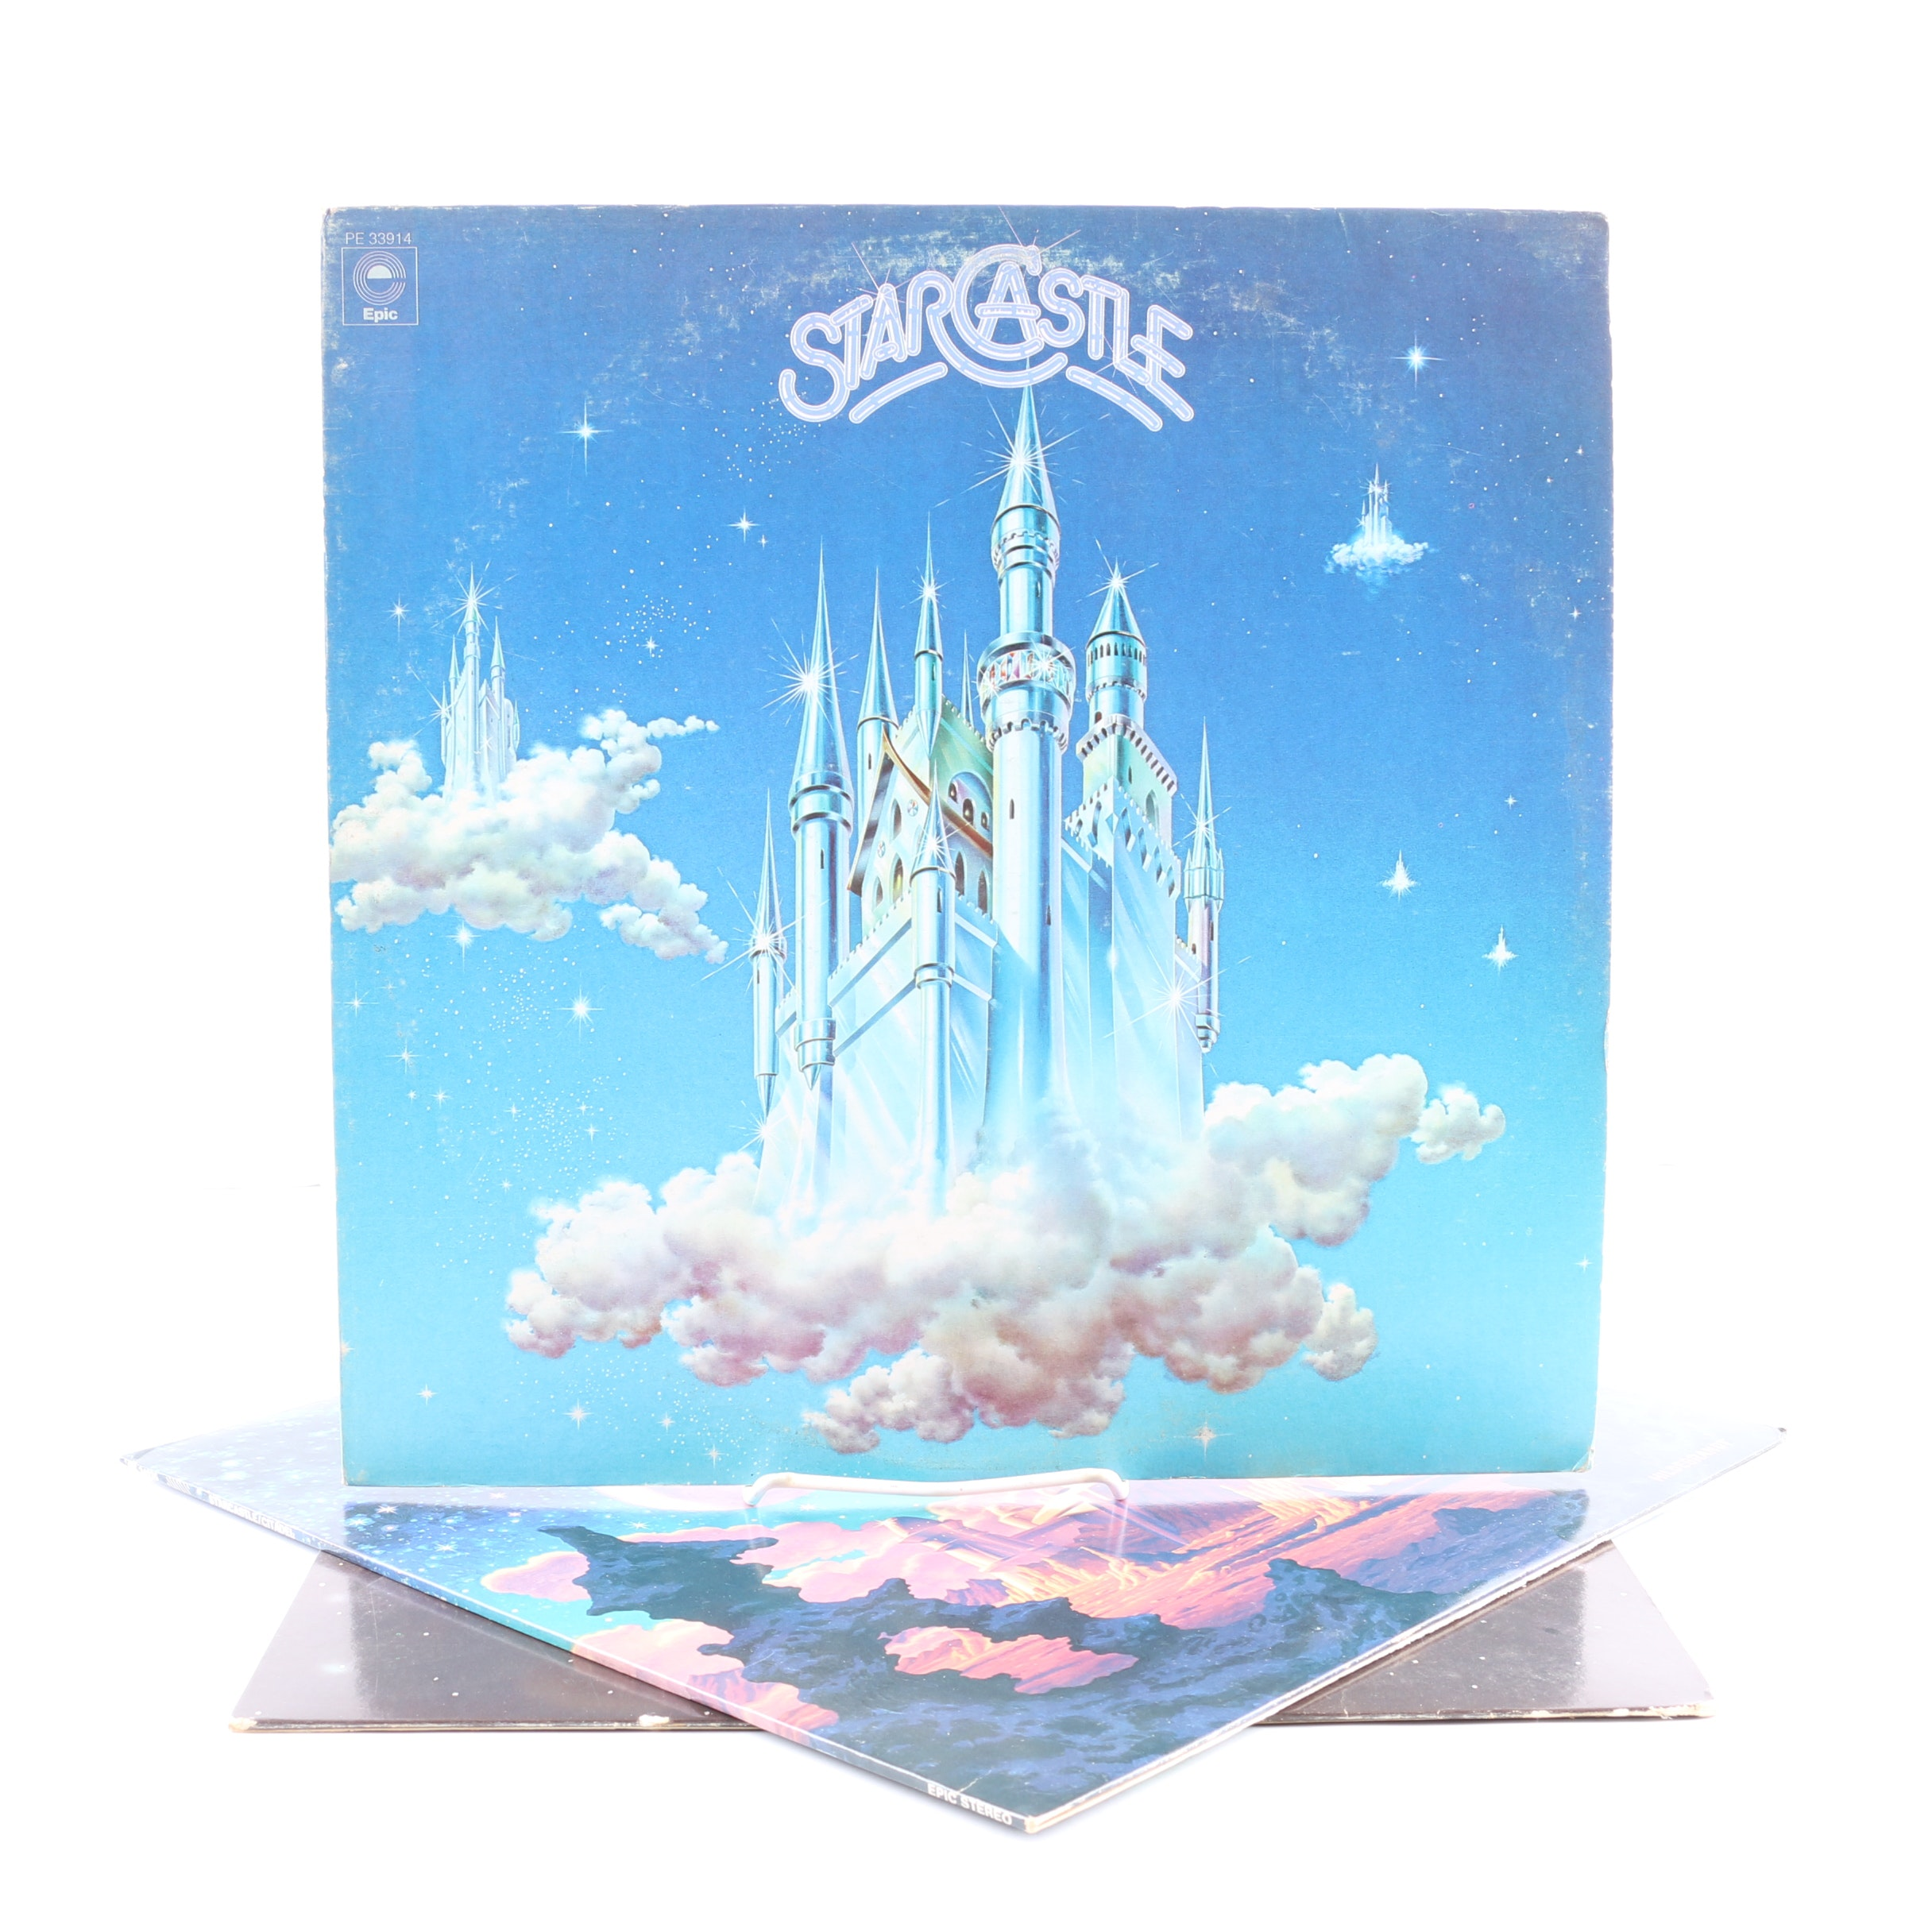 """Starcastle LPs Including """"Citadel"""" and """"Fountains Of Light"""""""